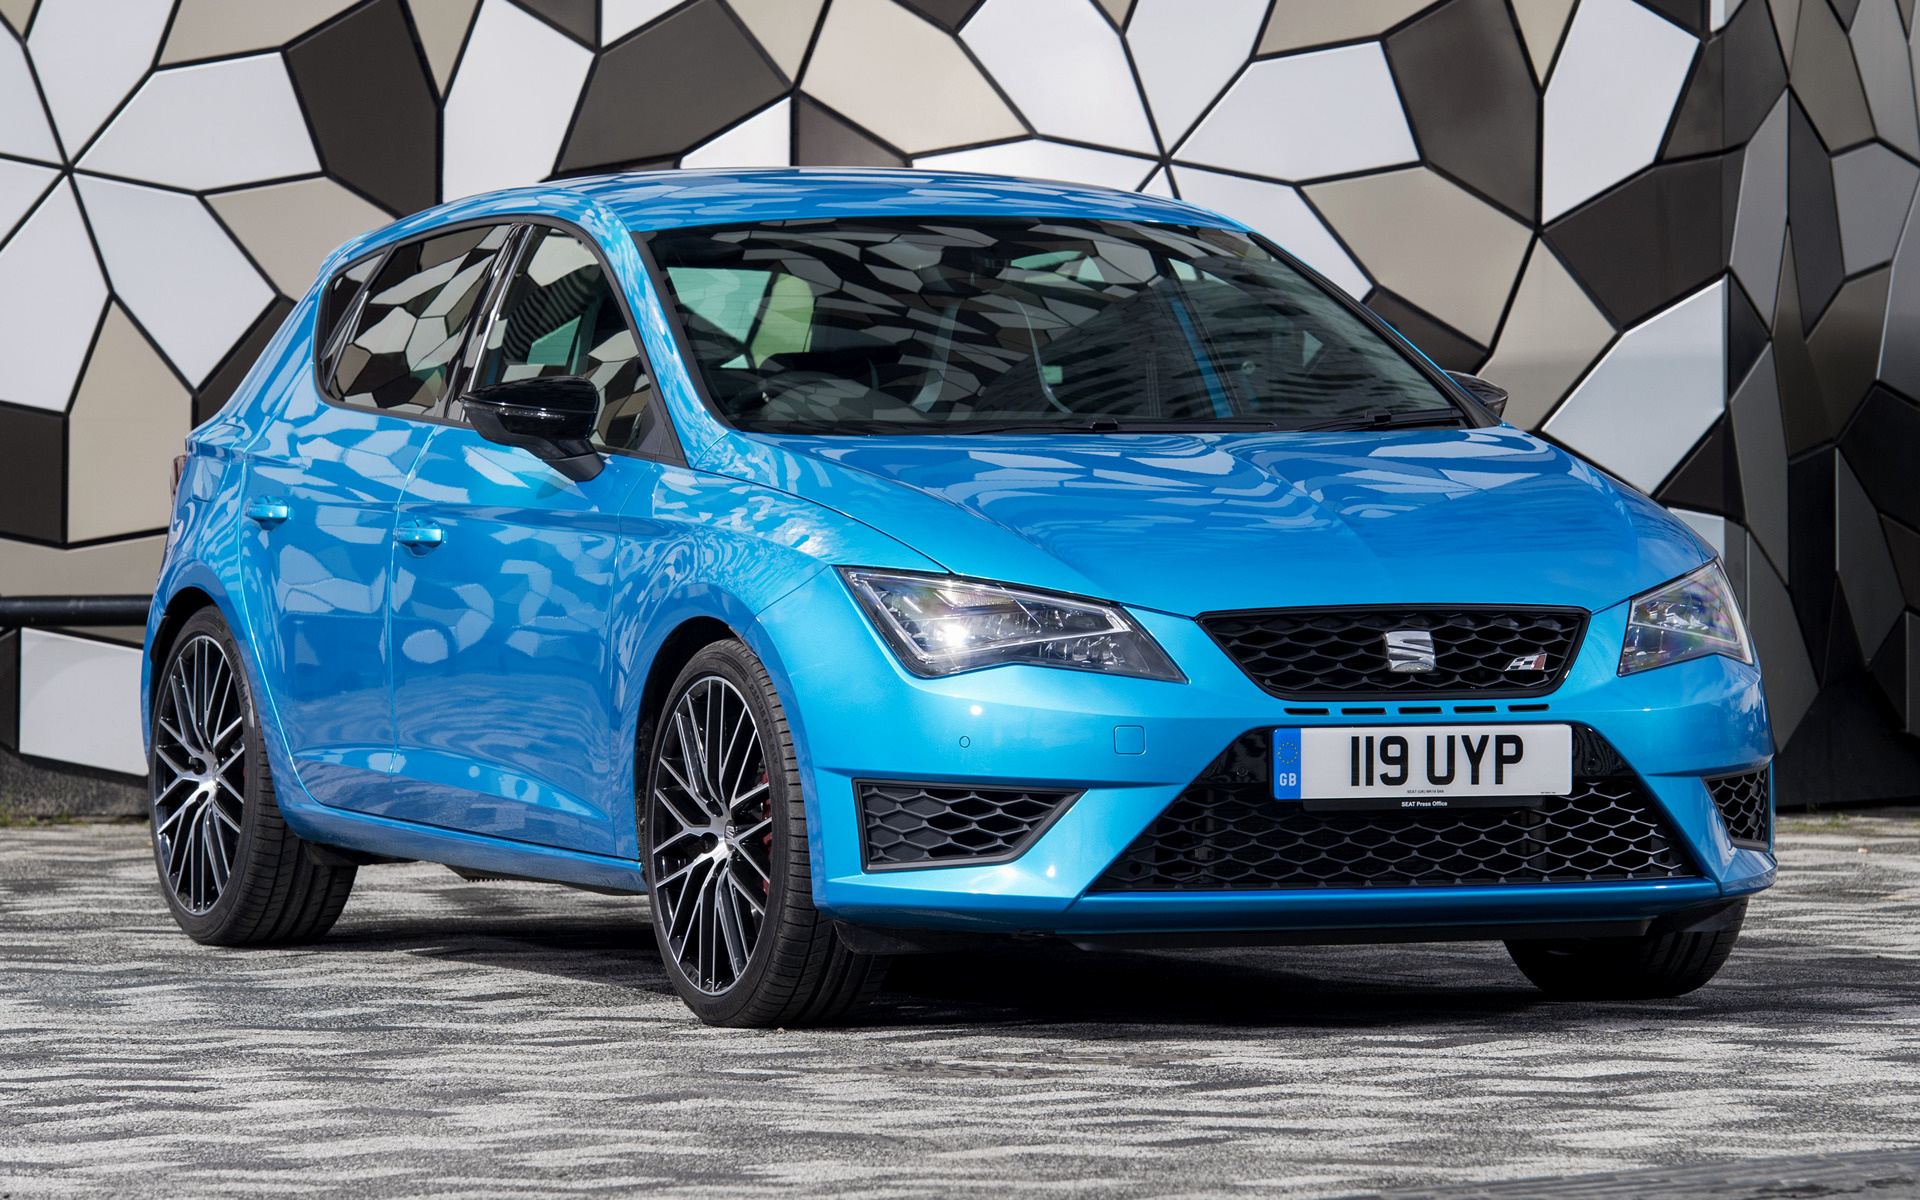 2016 Seat Leon Cupra 290 Uk Wallpapers And Hd Images